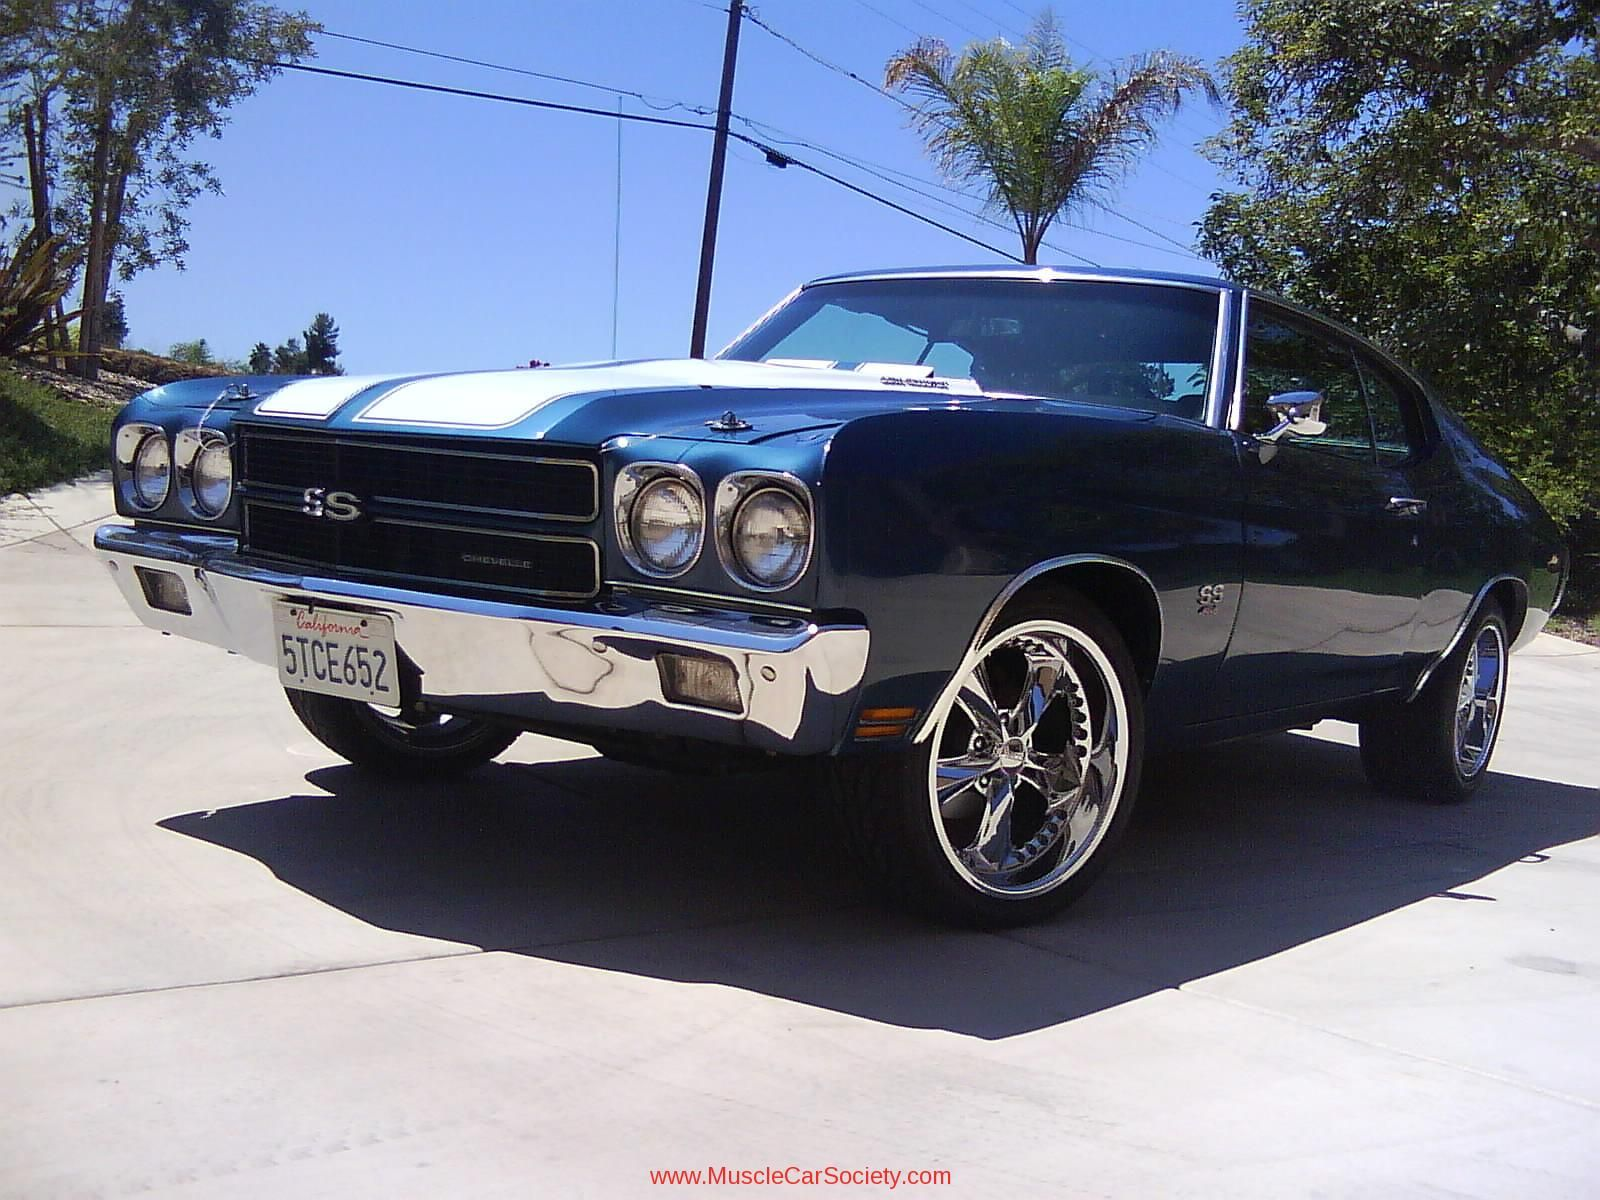 Best Cars Mostly Camaros Muscle Cars And Cars I Like Images